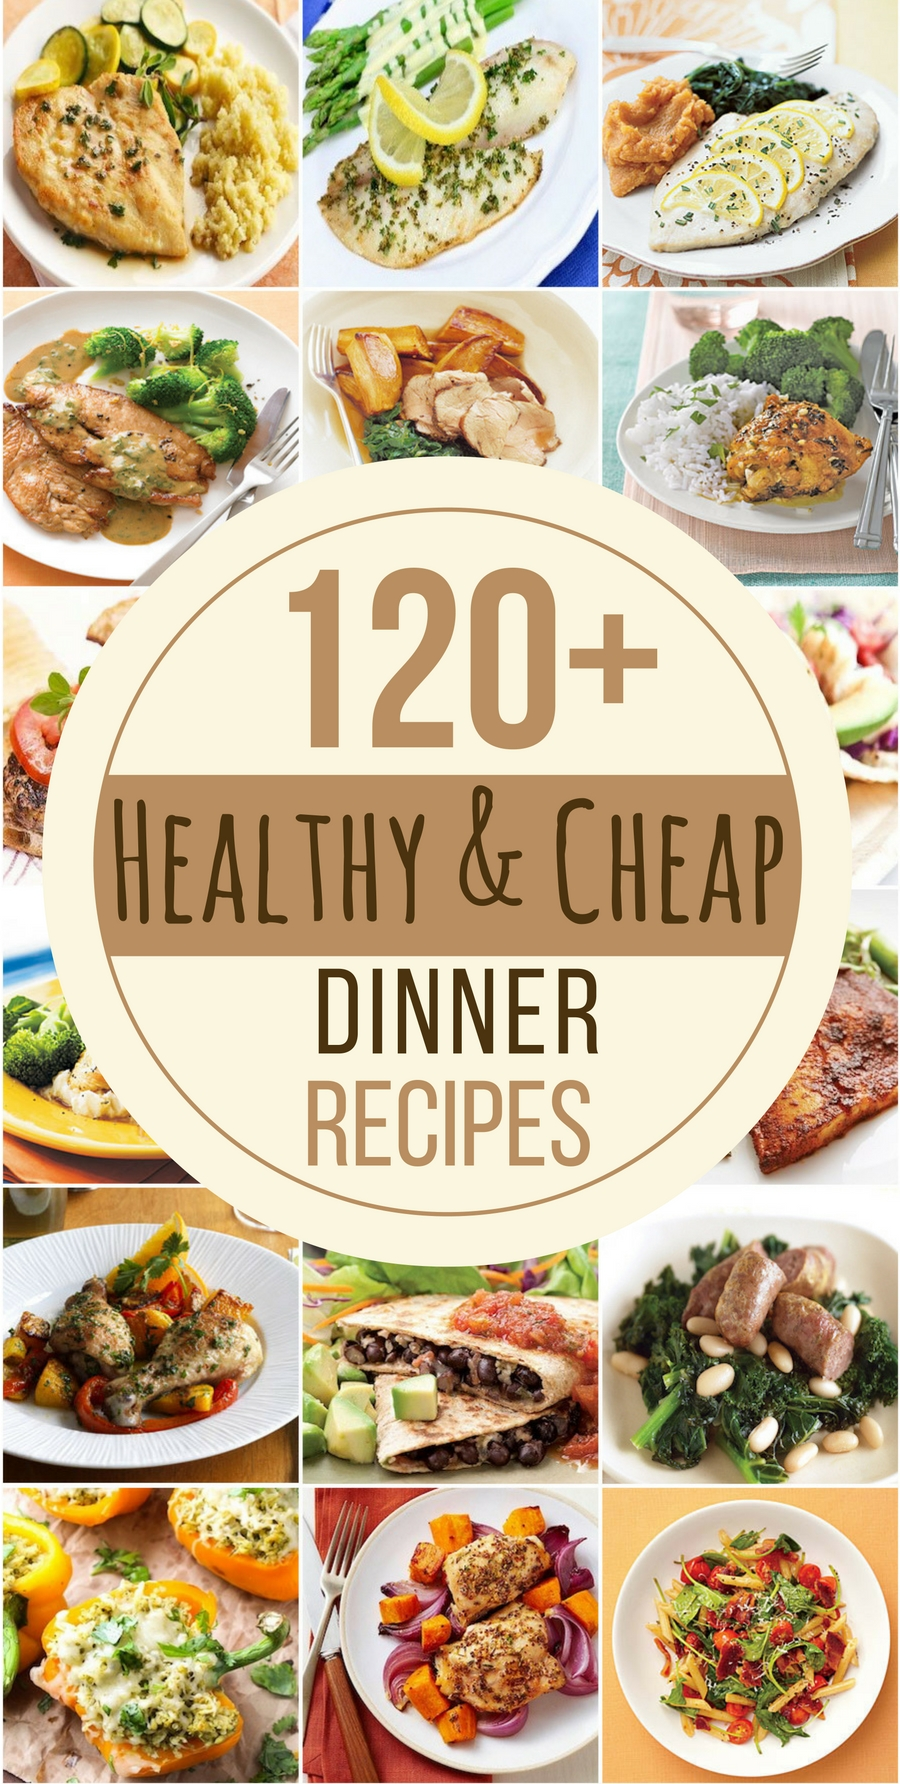 10 Amazing Healthy Meal Ideas On A Budget 120 healthy and cheap dinner recipes prudent penny pincher 1 2020